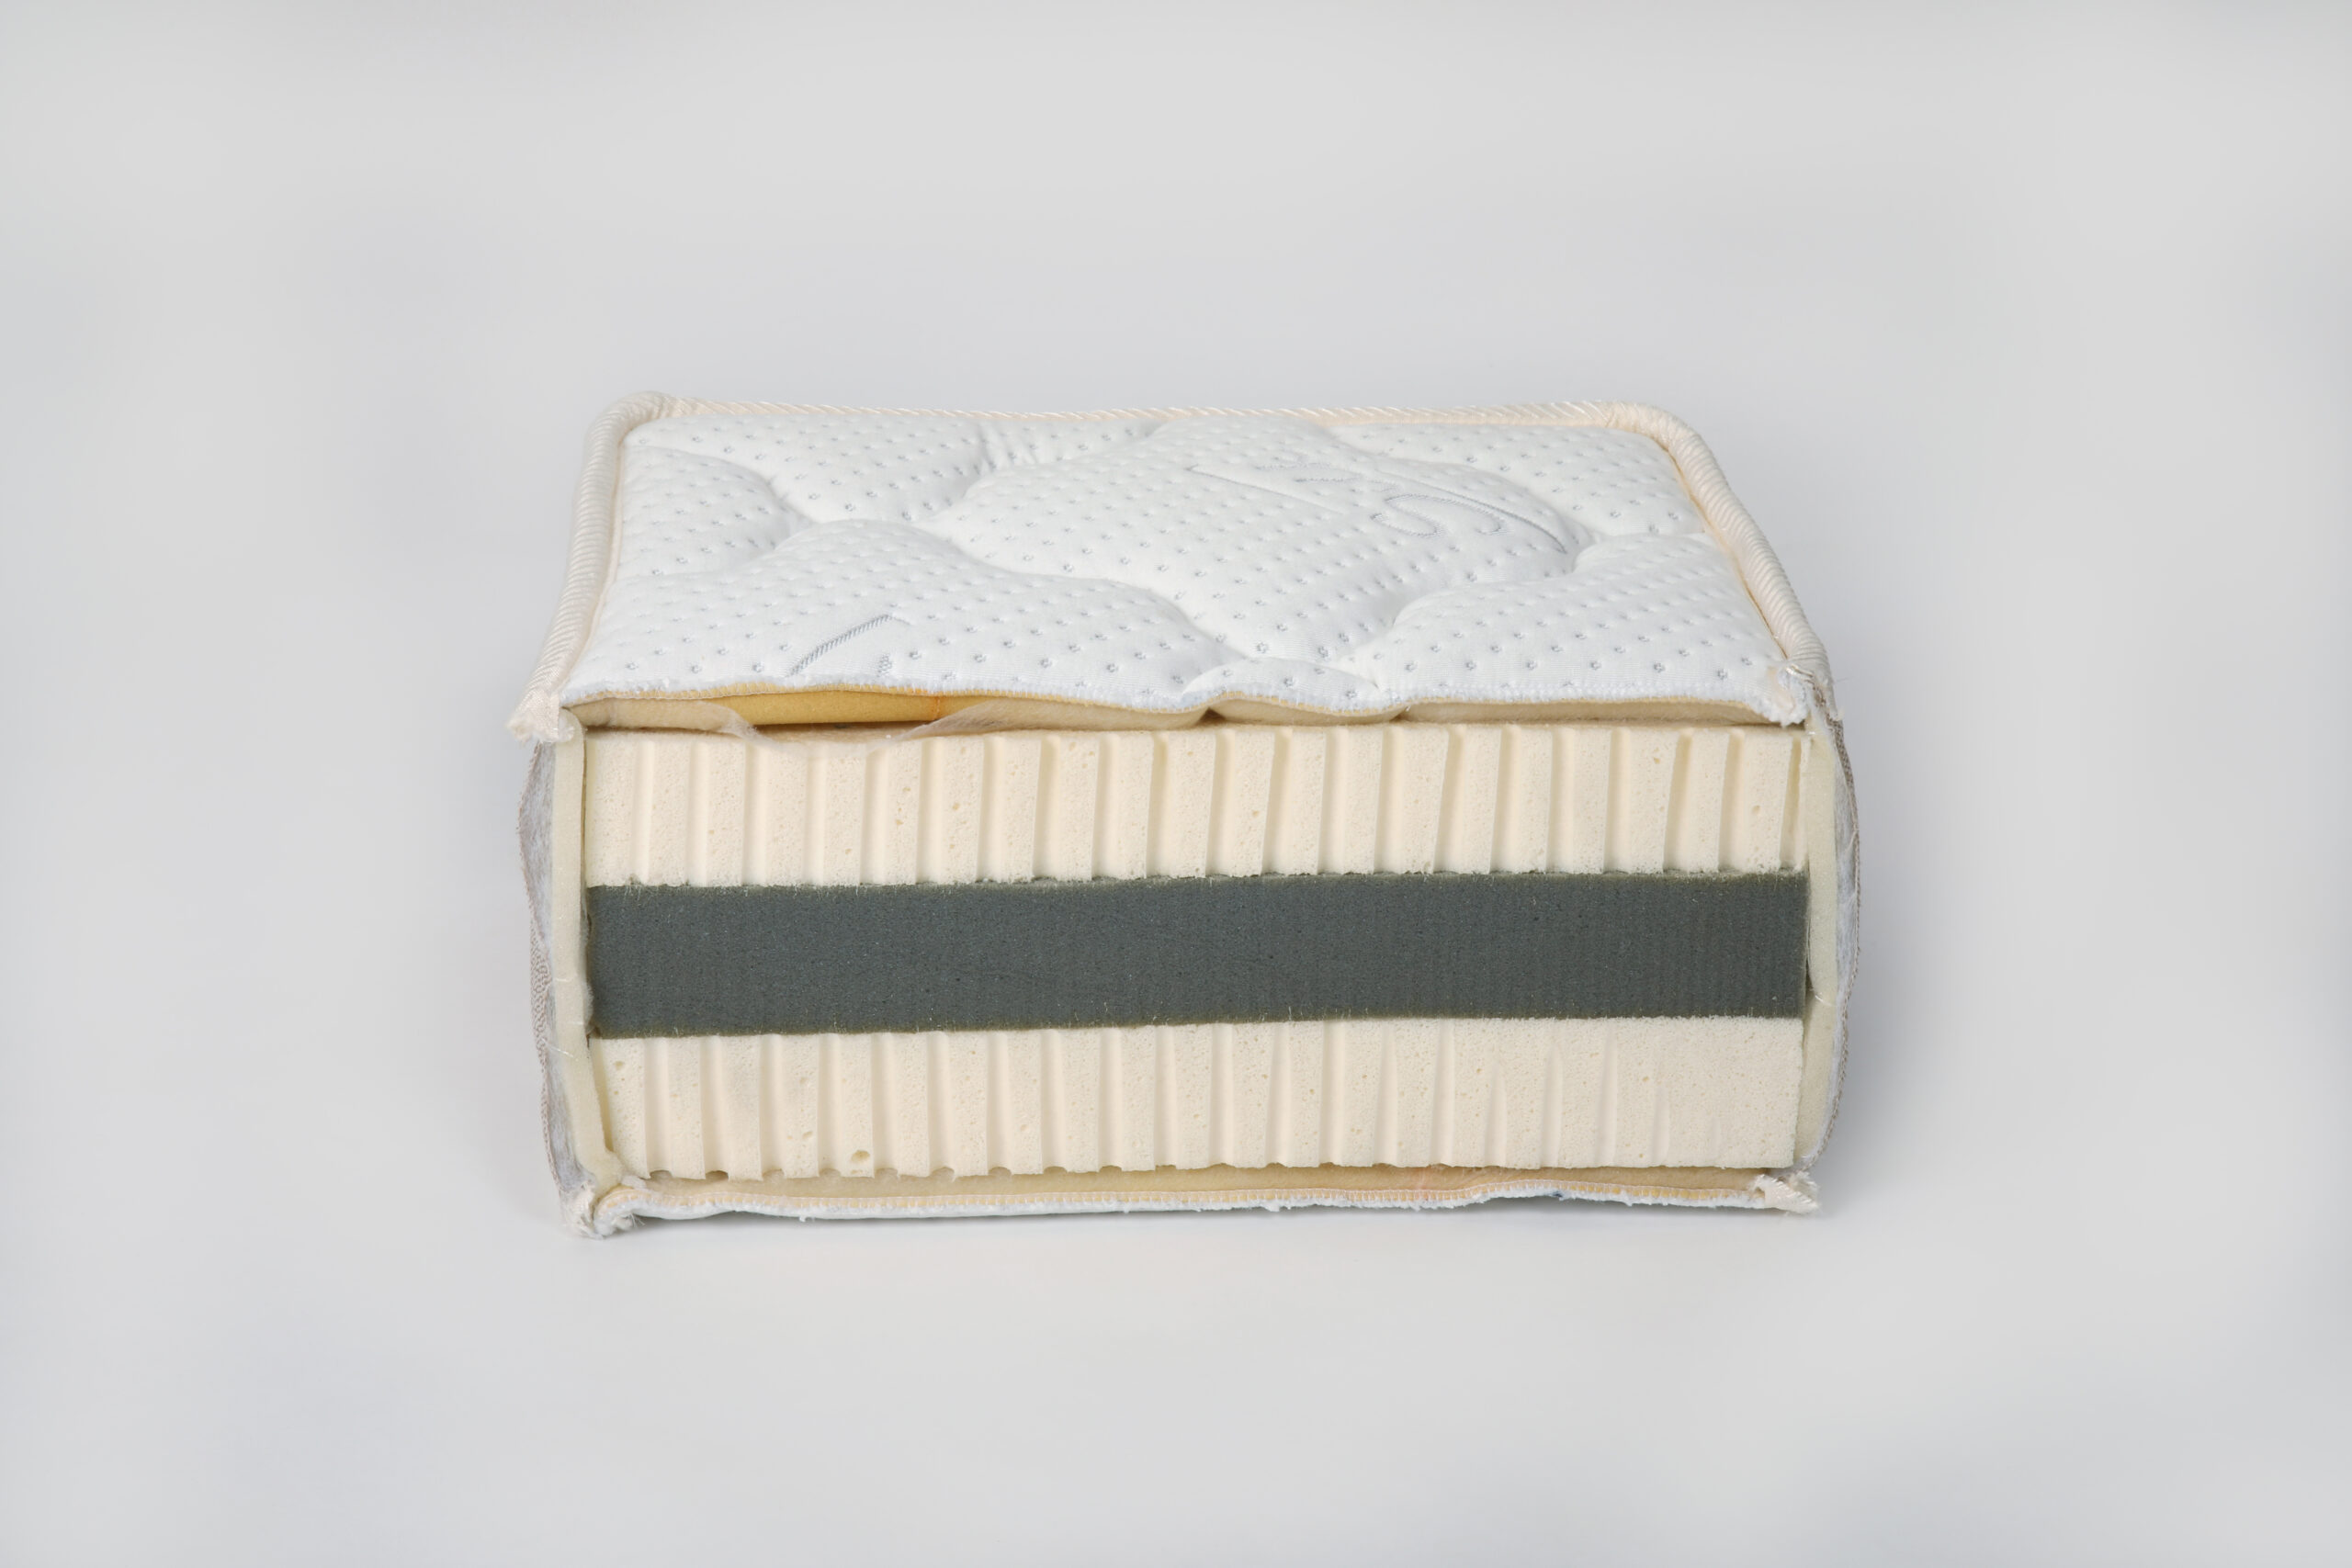 Latexan latex mattress by NAM House of sleep (picture 3)